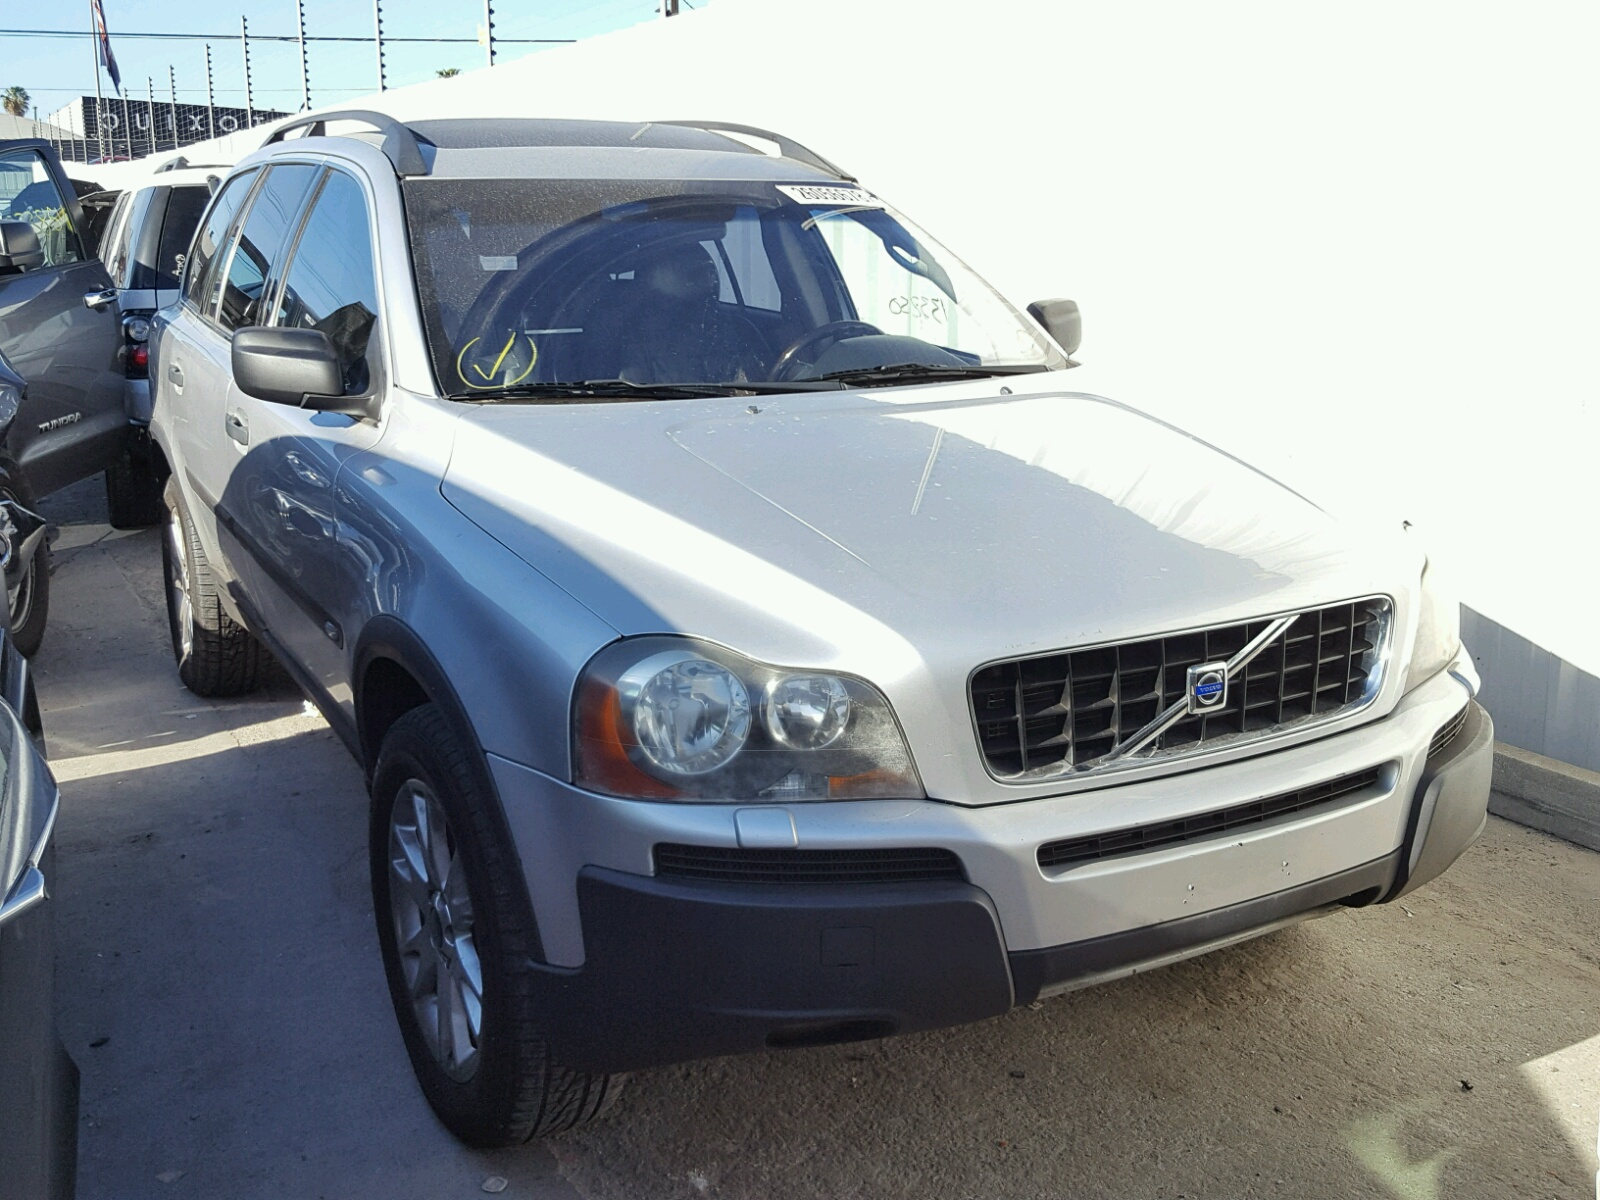 for md finksburg copart volvo adfd cars lot sale at